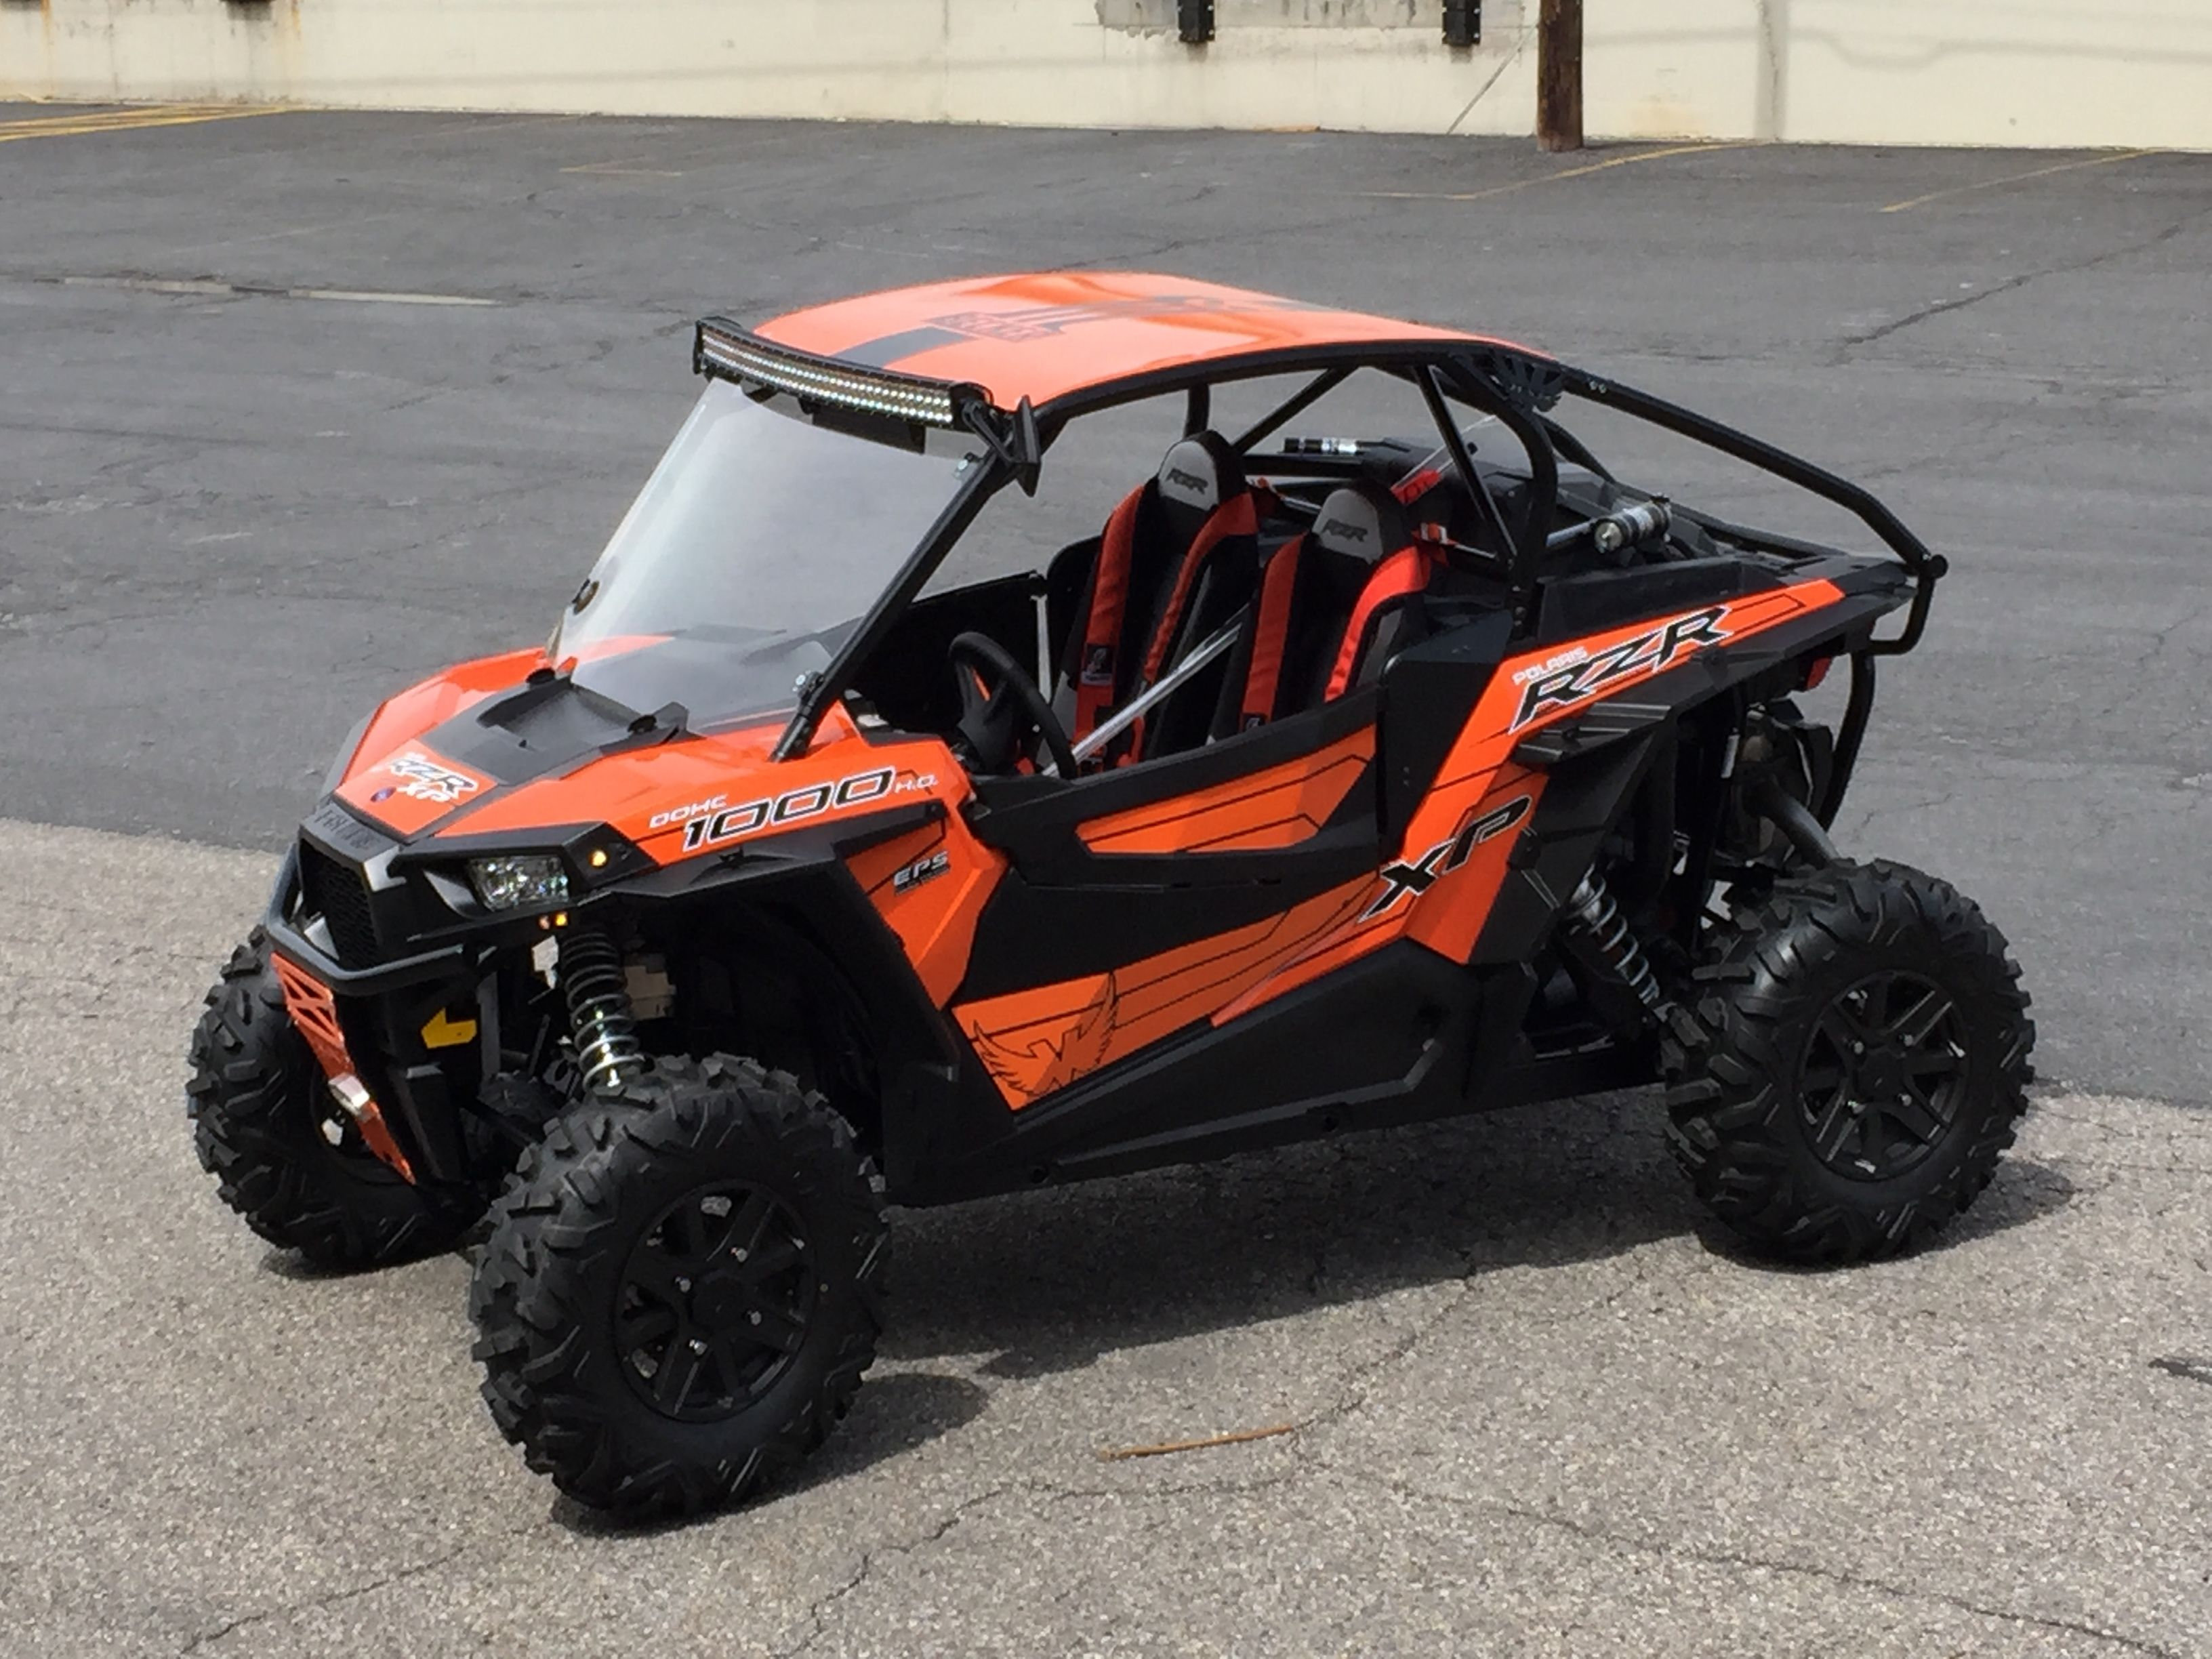 Polaris Rzr Xp 1000 4 Seat Coupe Cage With Roof Windshield 42 Led Light Bar And Side Mirrors Take A Closer Look At Polaris Rzr Xp 1000 Polaris Rzr Xp Rzr